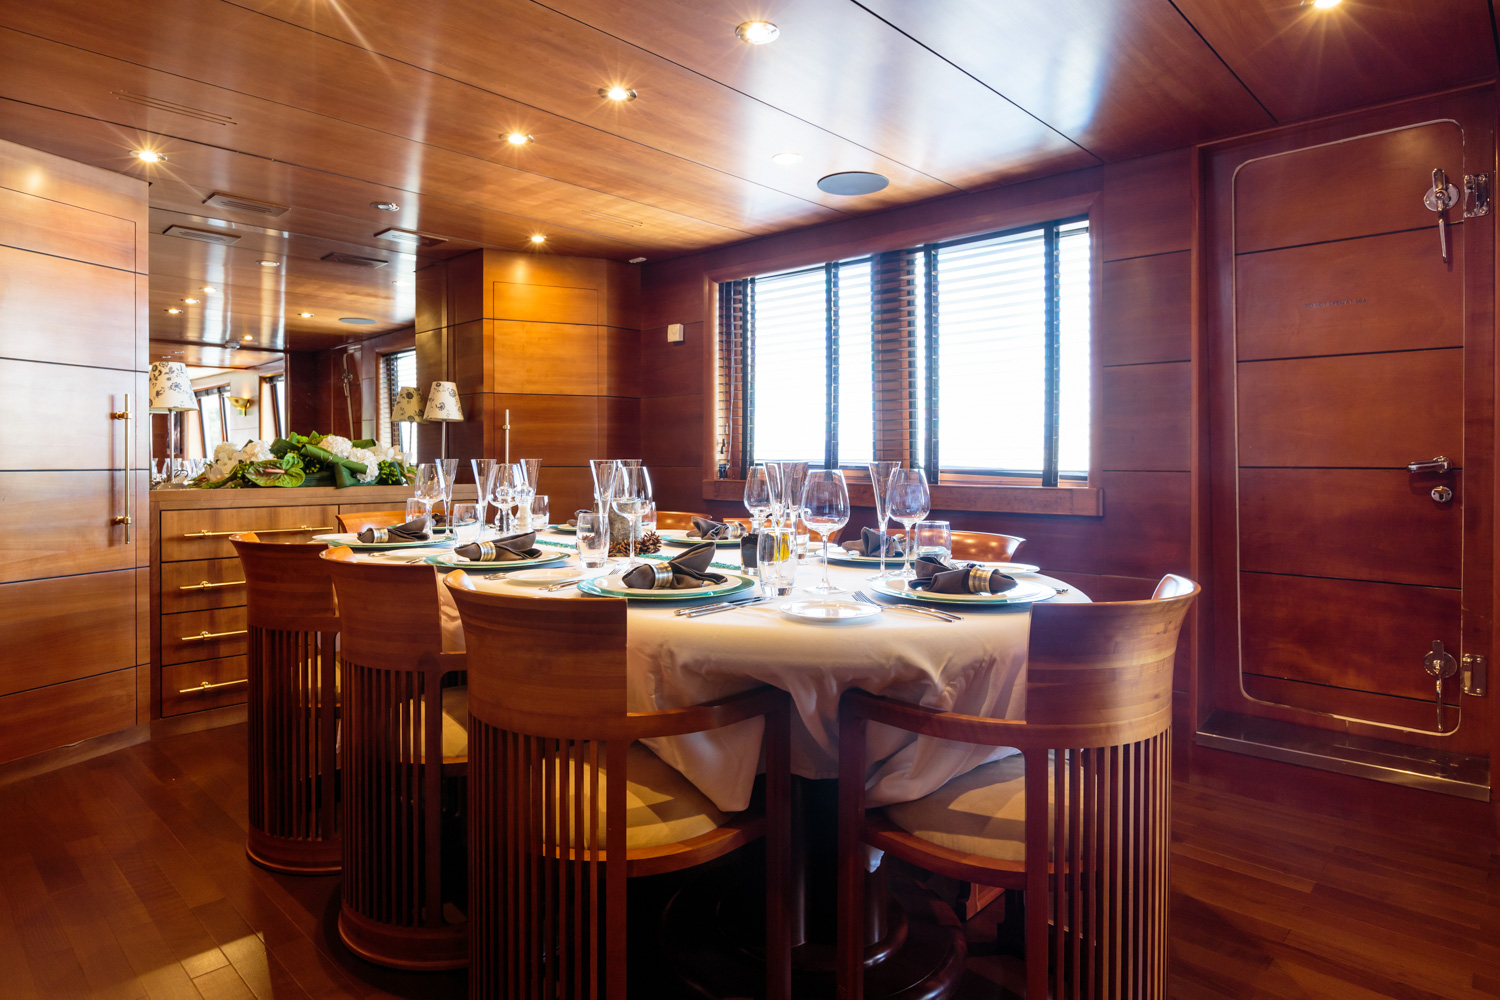 Motor yacht fiorente formal dining area yacht charter for Formal dining area